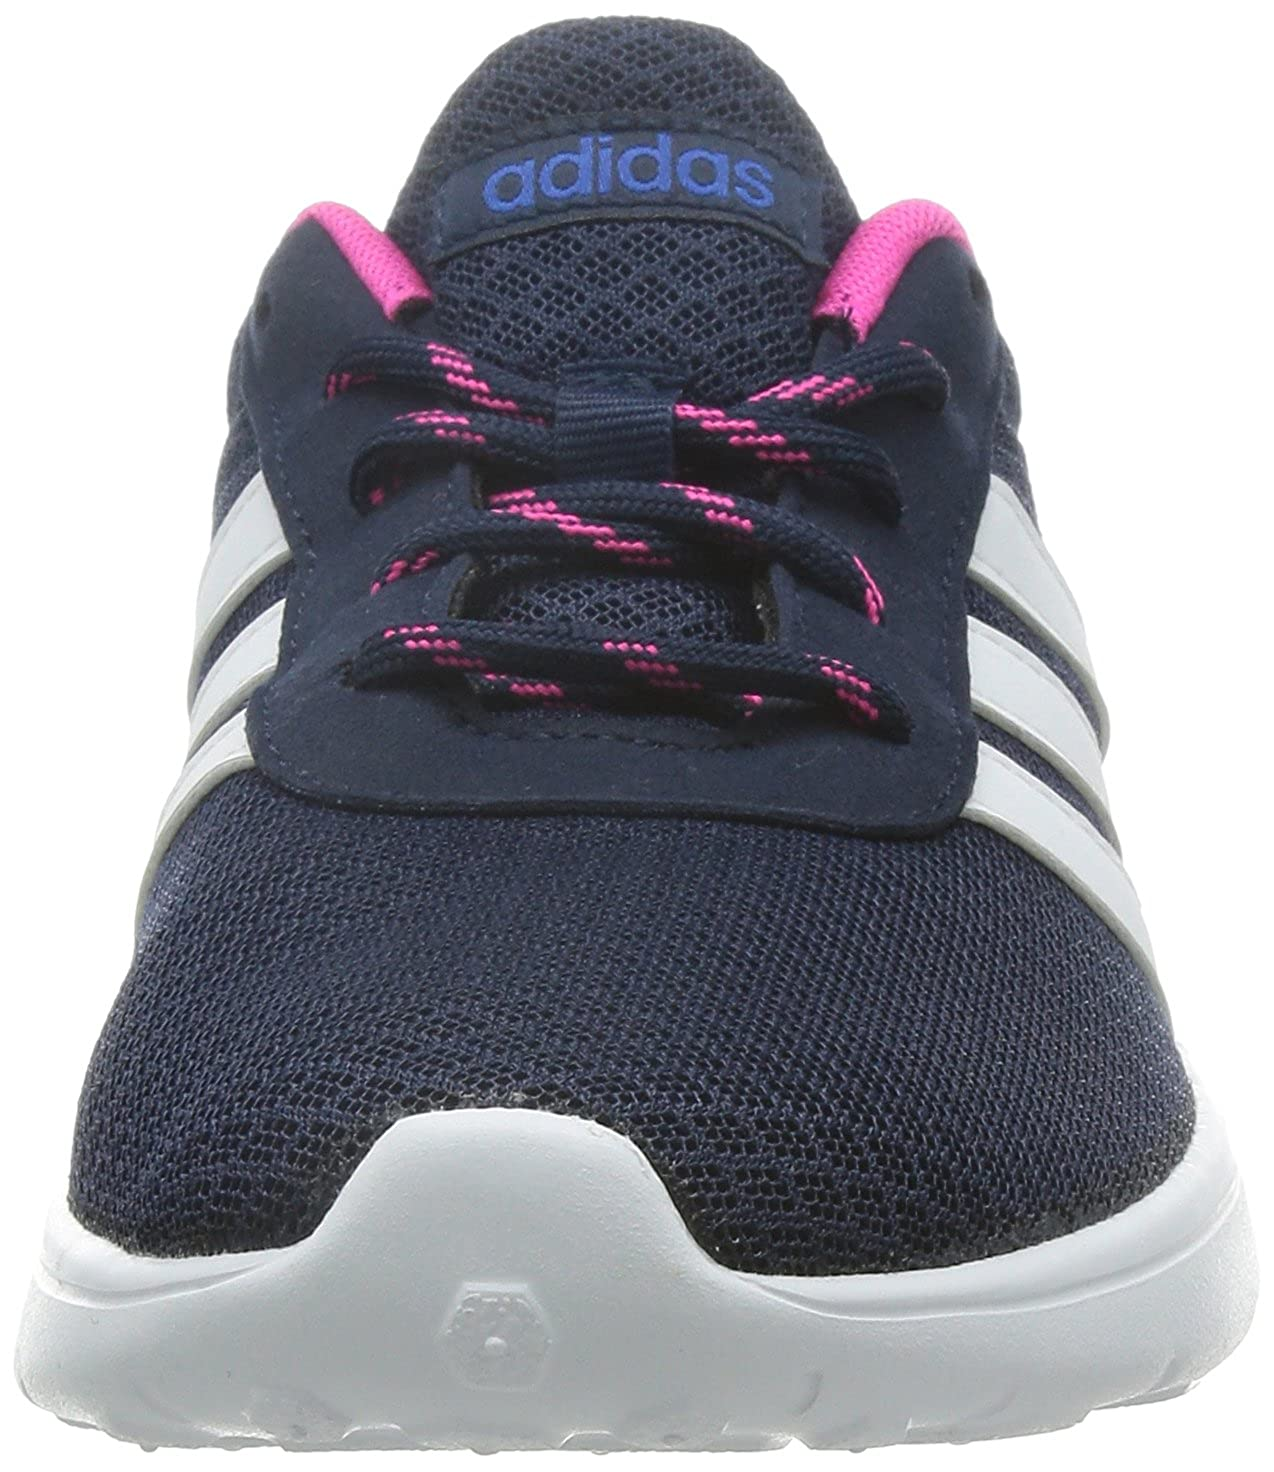 0204a8c04ea483 Adidas Lite Racer W F99376 Womens shoes Navy Pink White 8 B(M) US  Buy  Online at Low Prices in India - Amazon.in